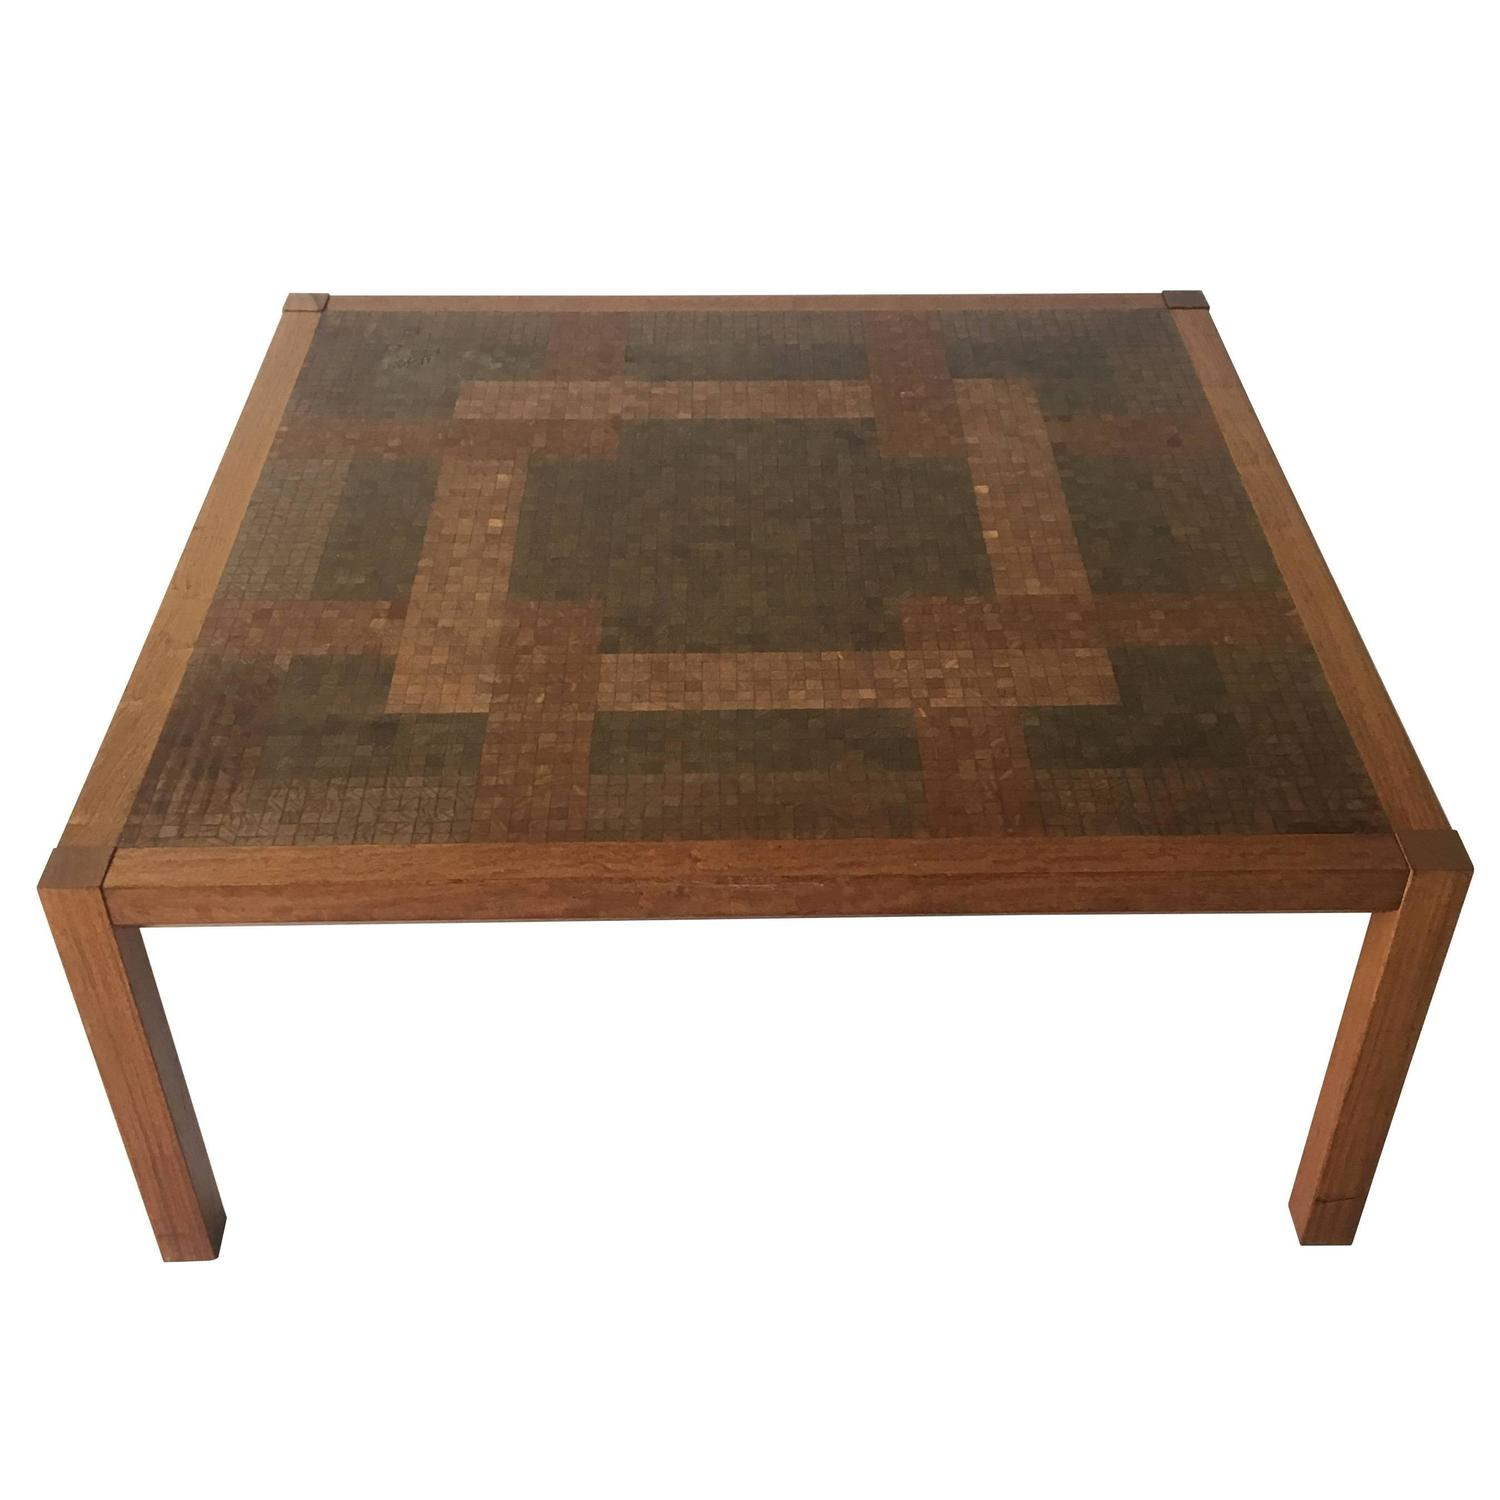 Danish Architect Designed Coffee Low Table with Inlaid Wood Mosaic